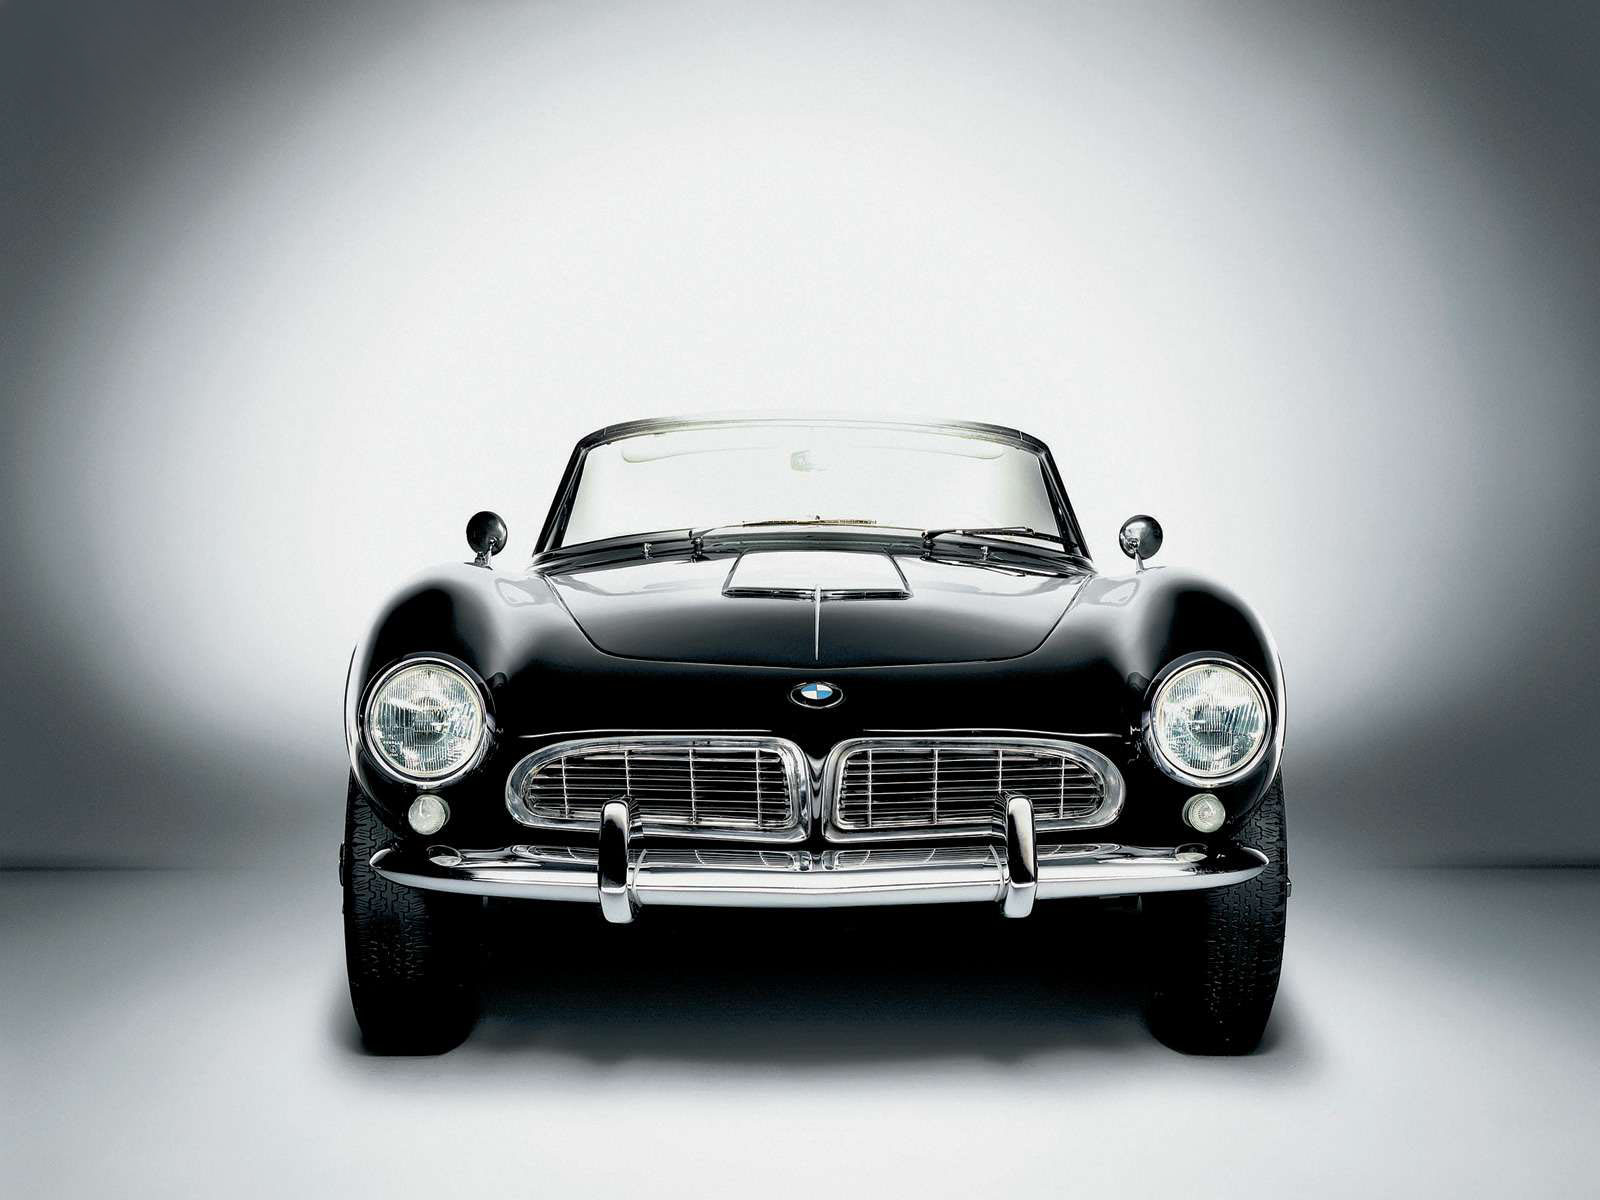 Valuable information Bmw vintage car theme, will